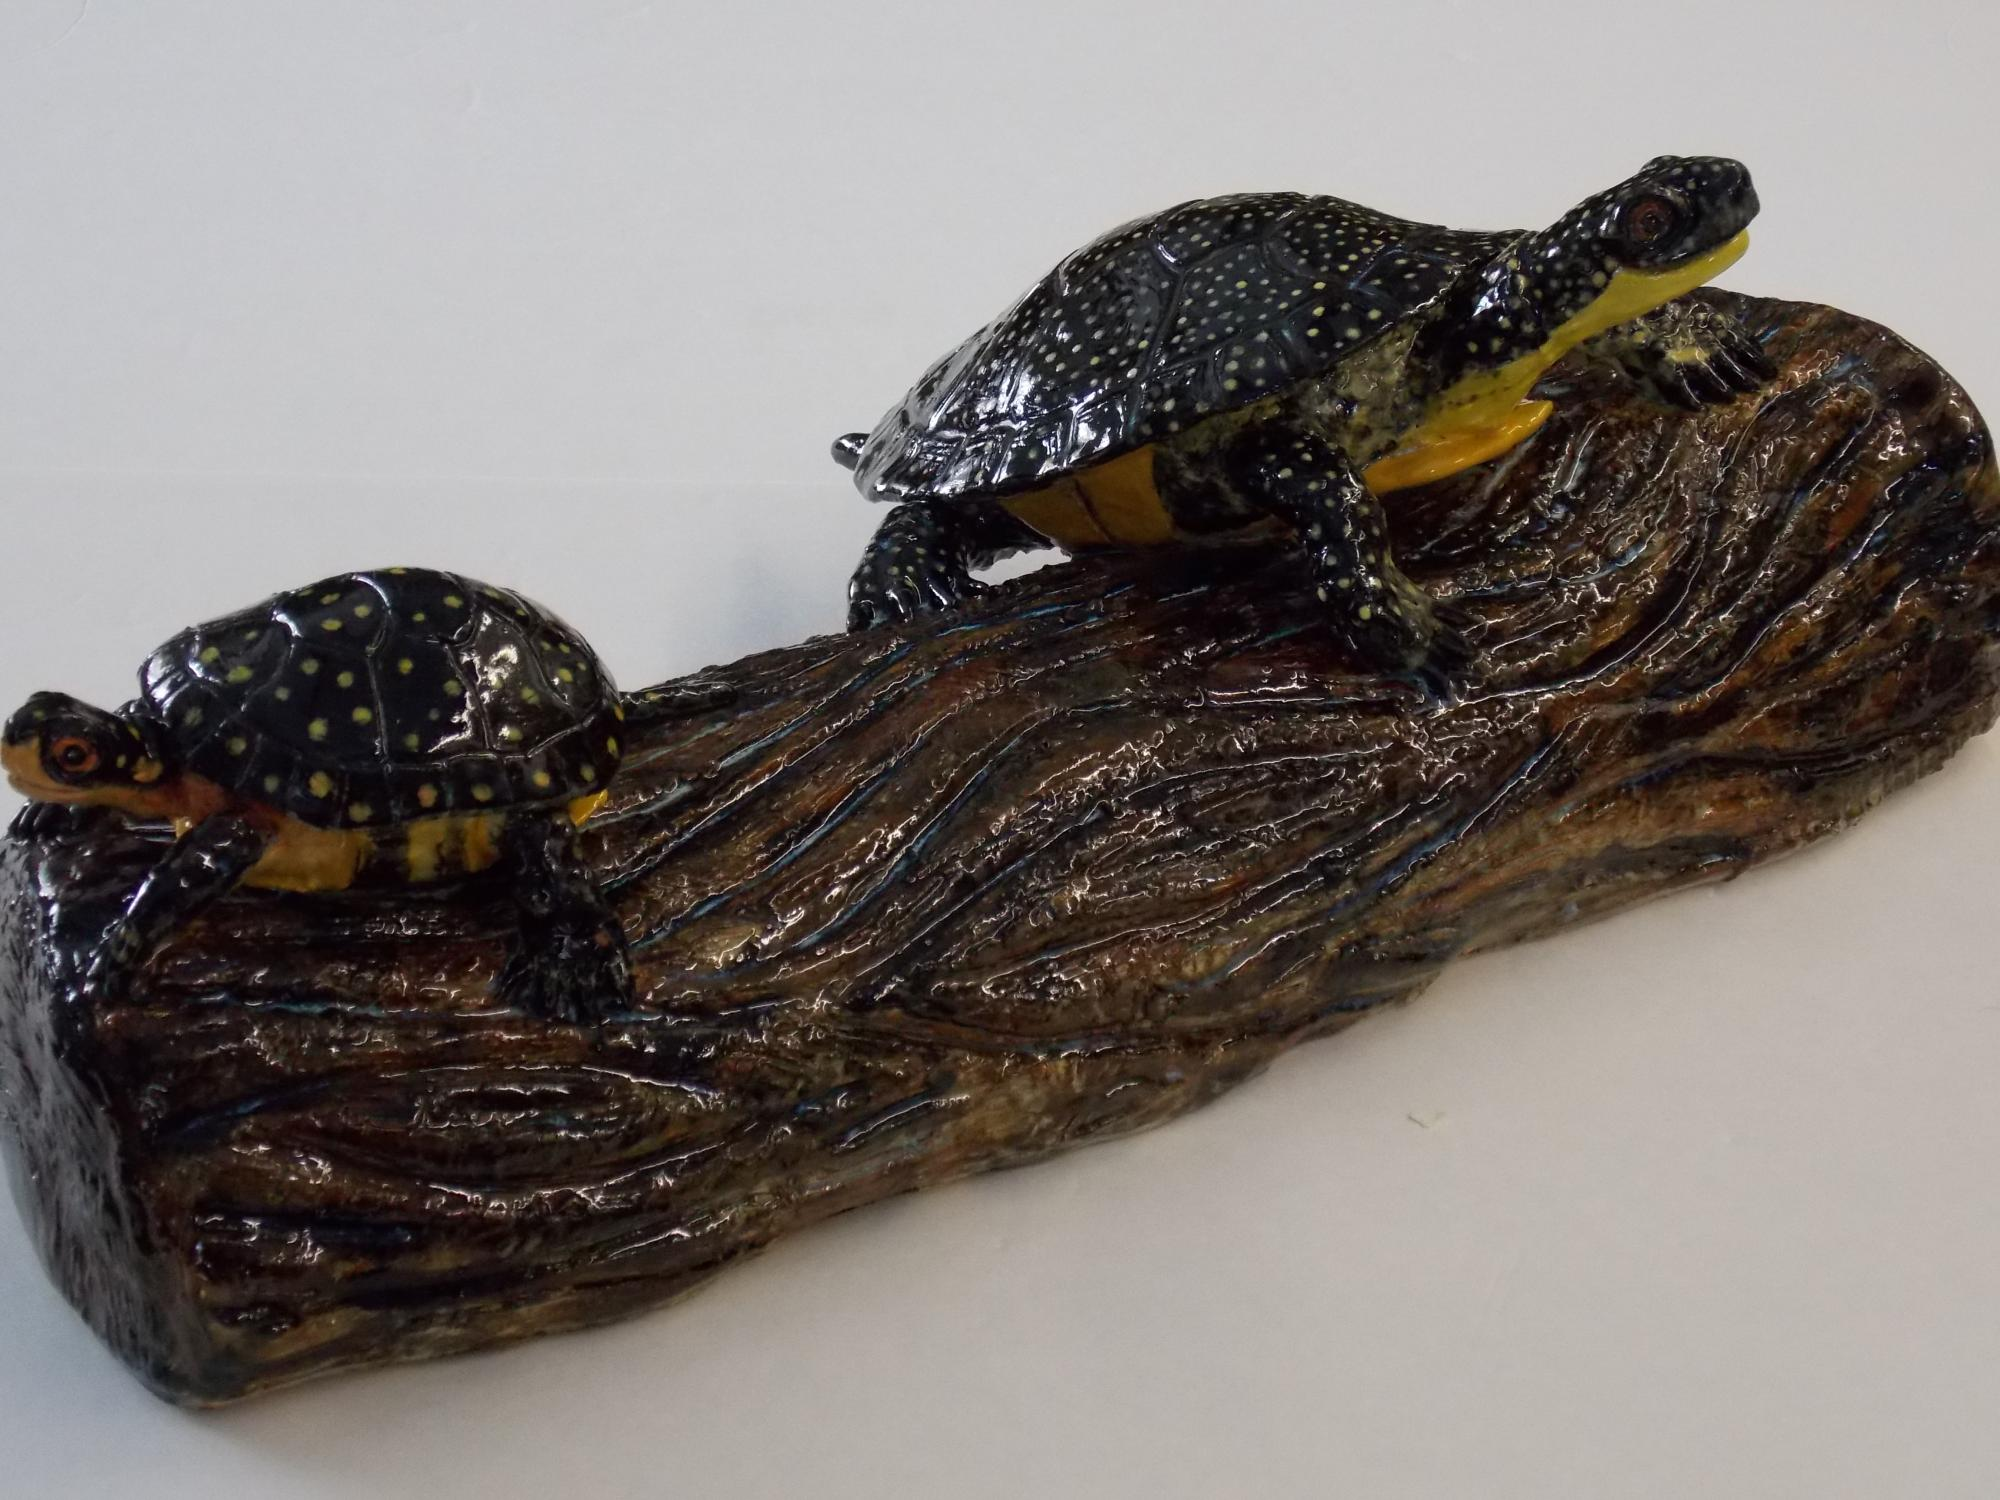 Blanding_s_and_Spotted_turtles_on_log__Muhich_2015__cone_6_ceramic__20_x_11_x_8_inches.JPG